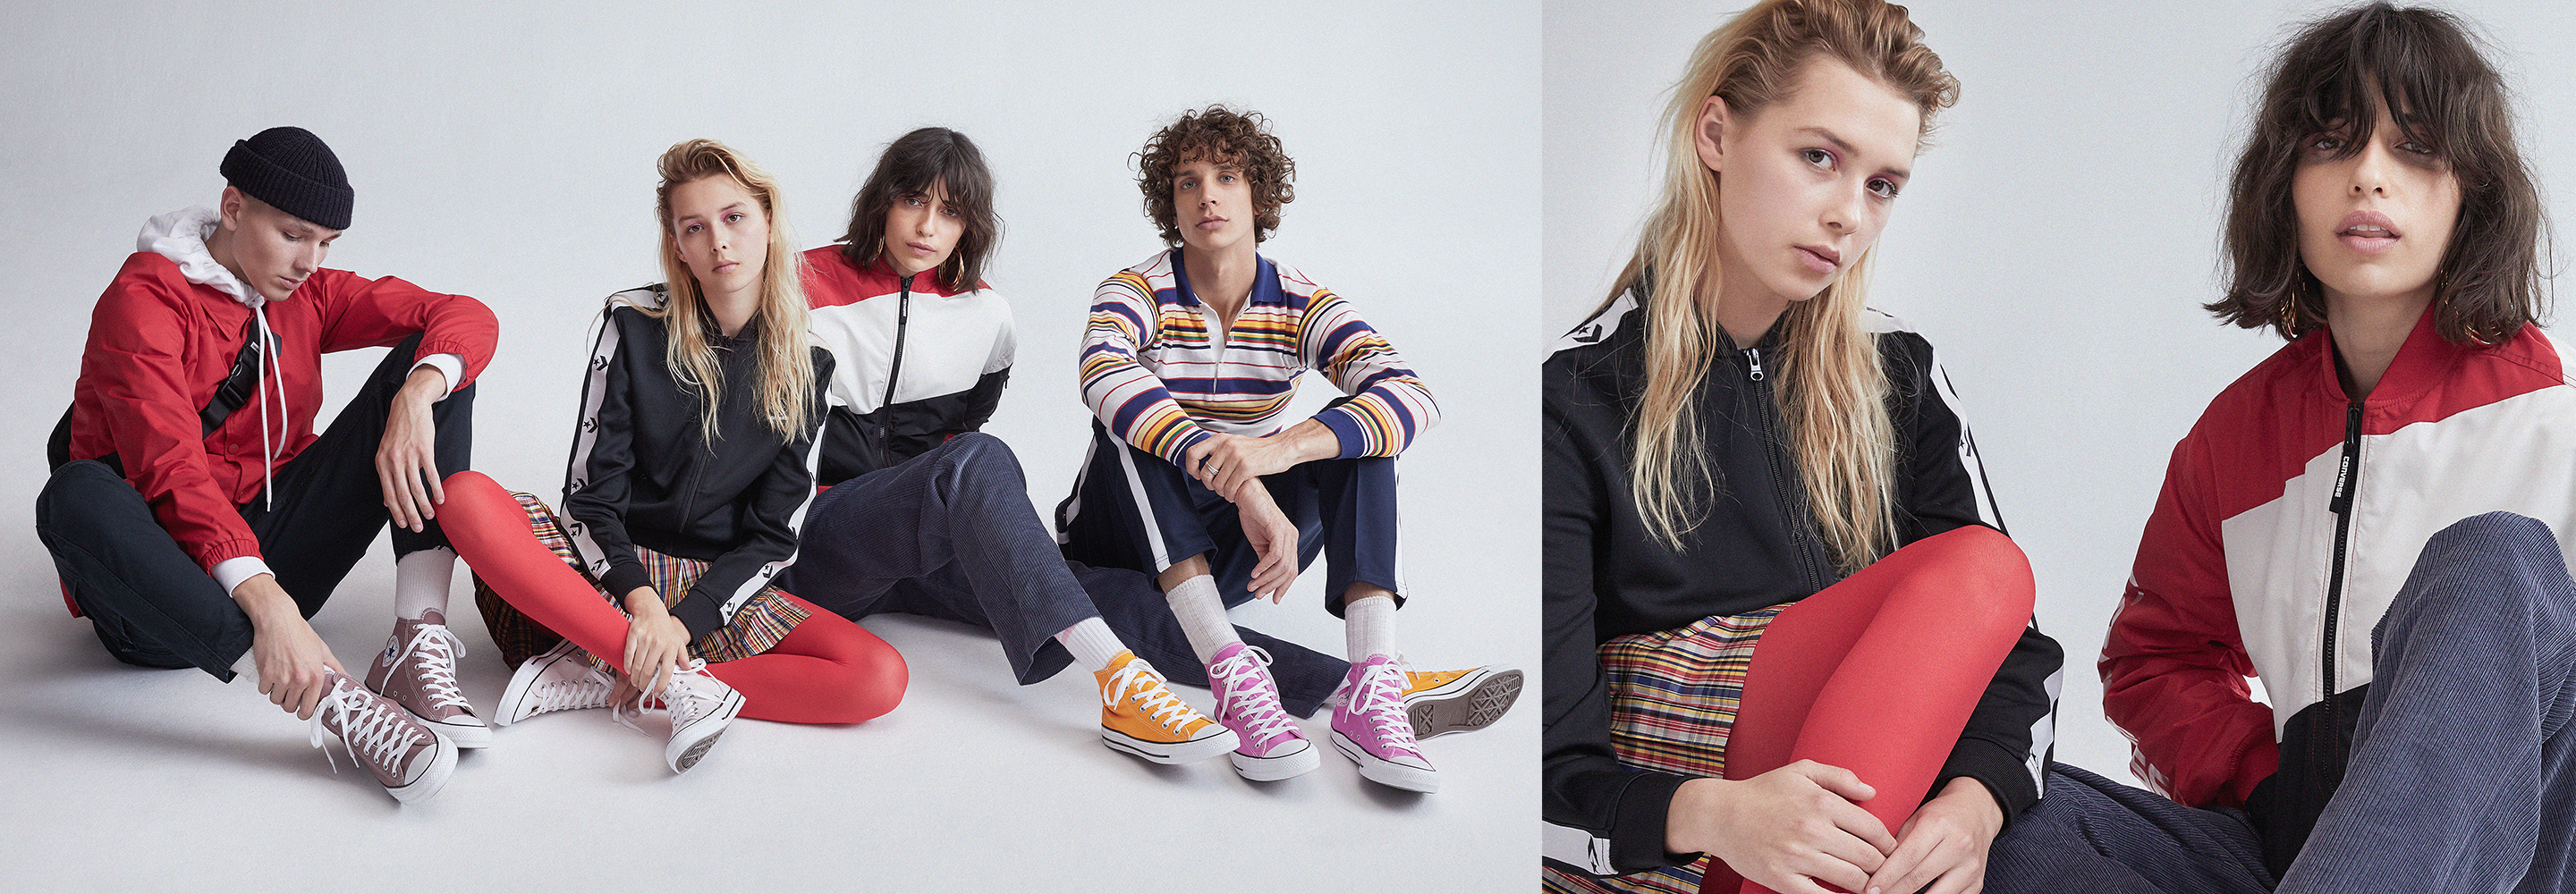 Image of a group of people wearing Converse.